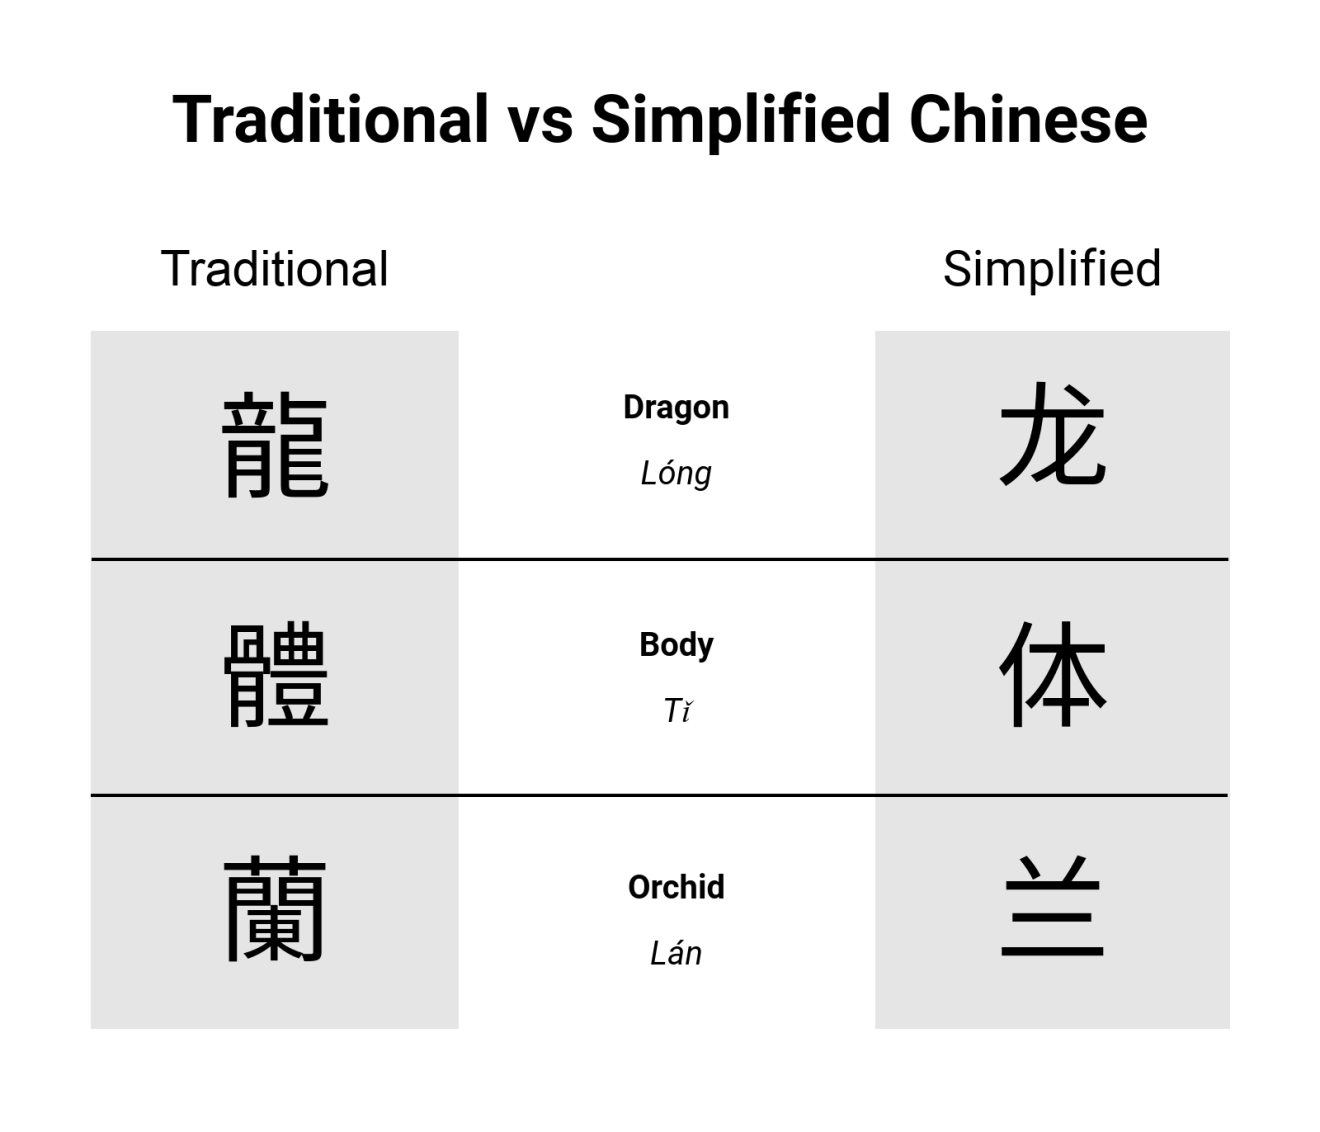 The Chinese government adopted simplified characters in 1950s to increase literacy in the country.